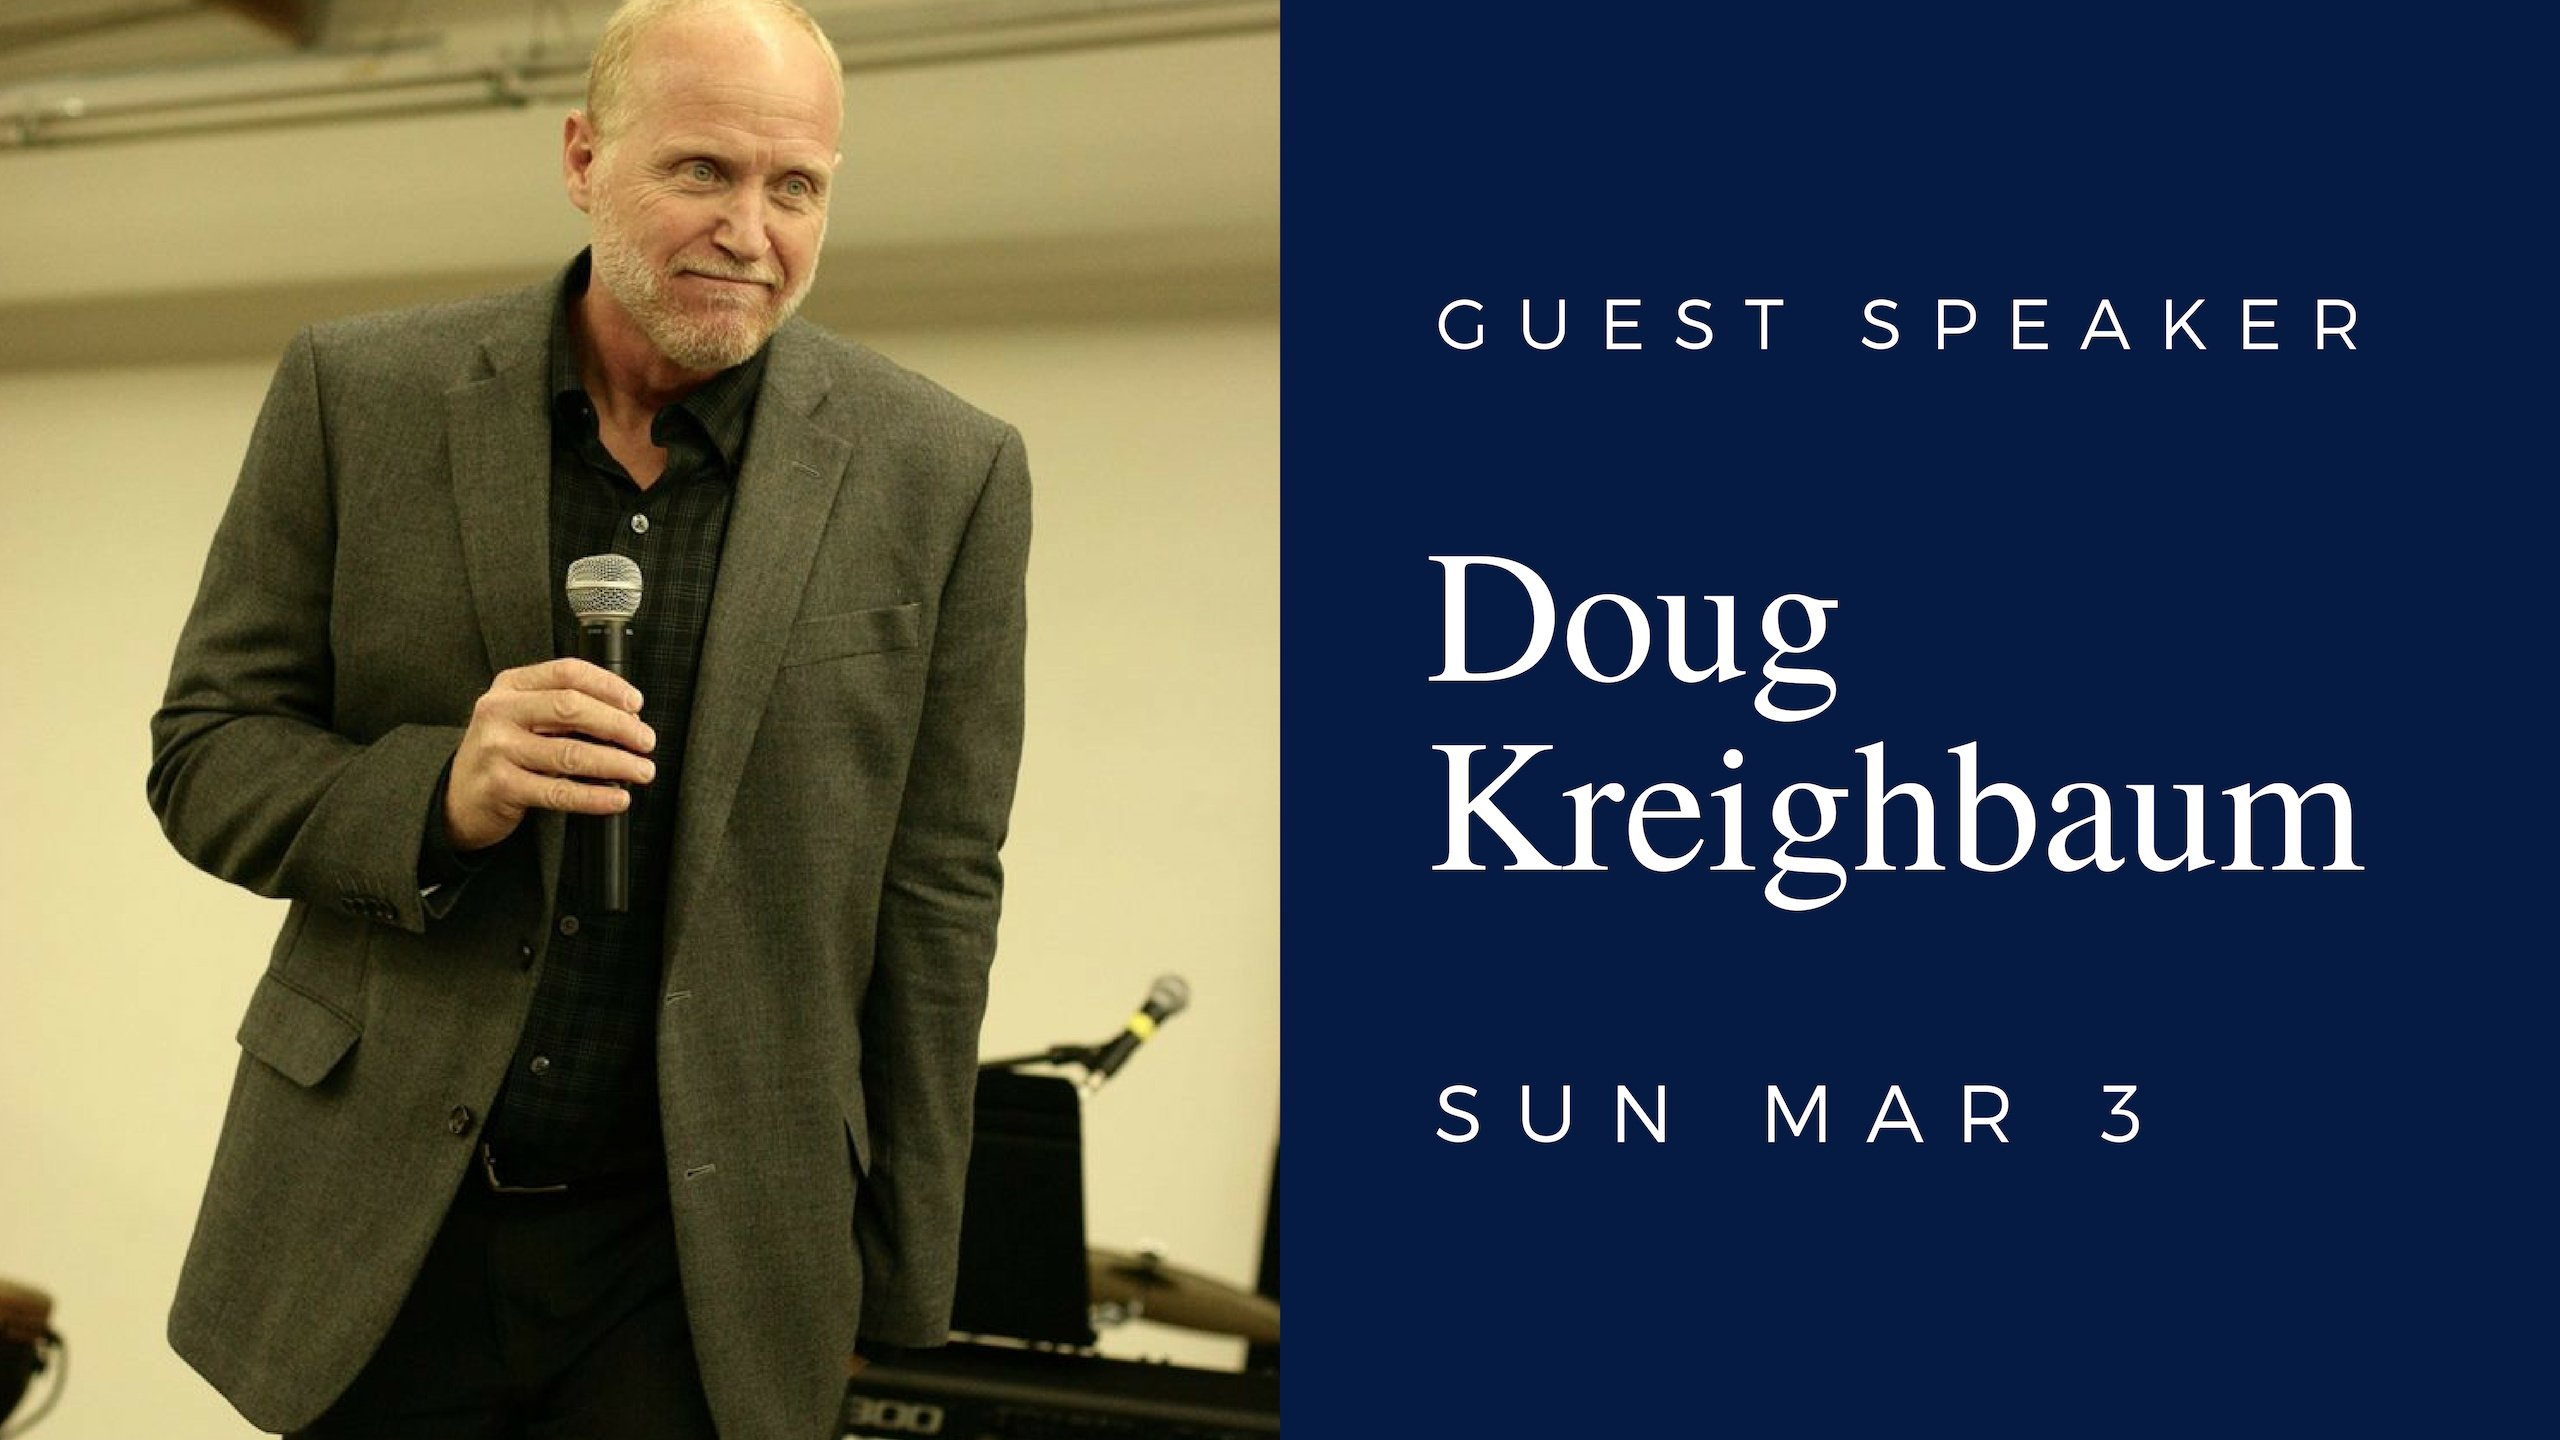 We invite you this Sunday at 10:15 AM as Doug Kreighbaum will be with us to encourage hearts.